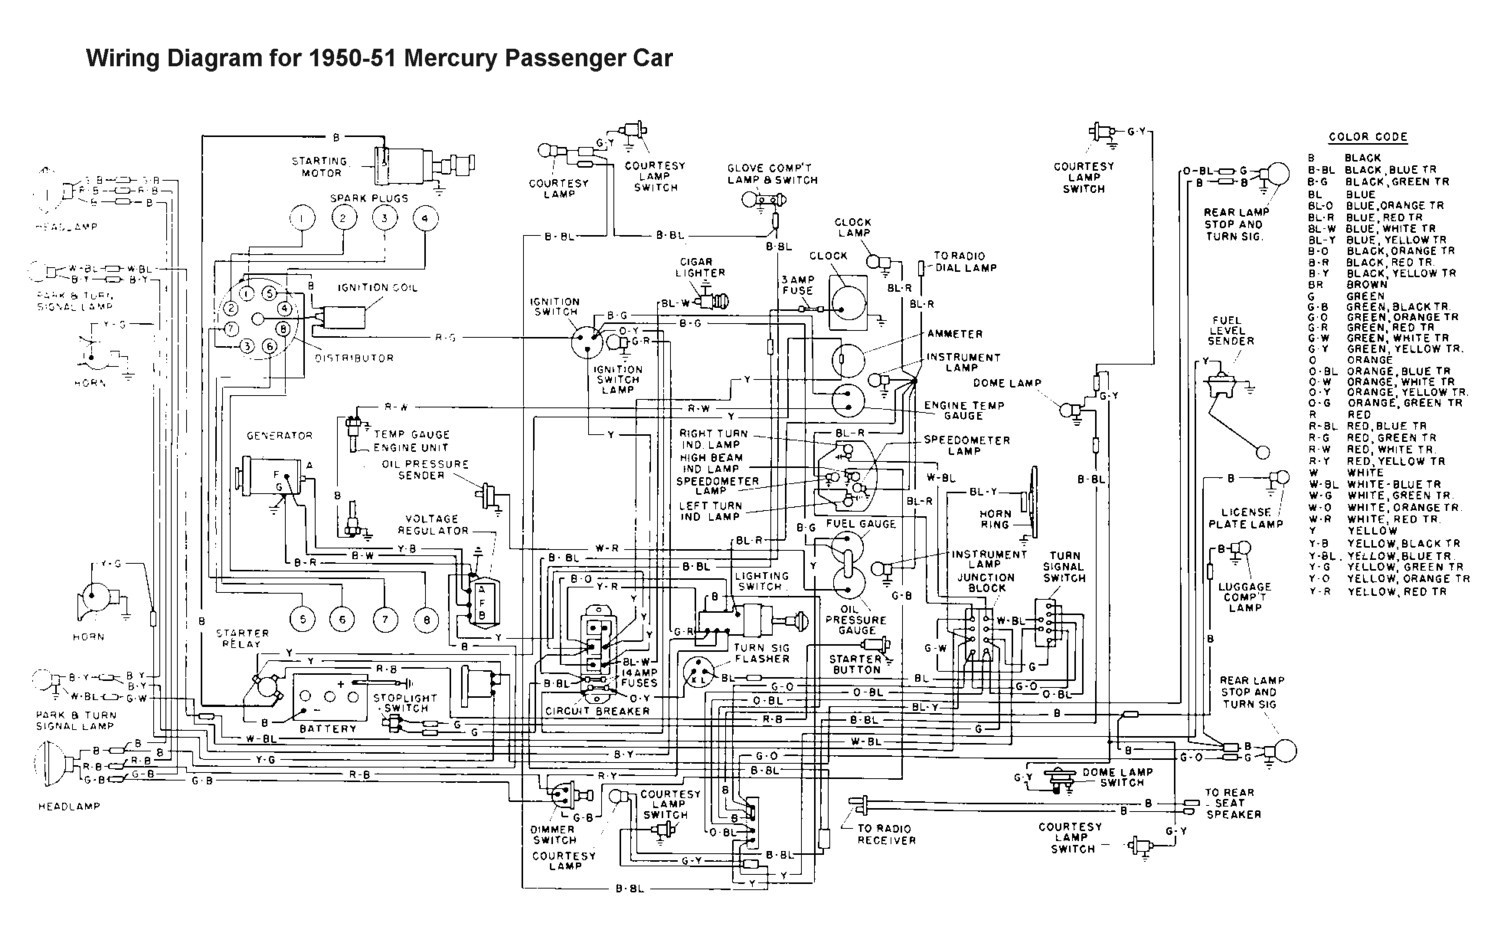 Flathead Electrical Wiring Diagrams Fender American Standard Schematic For 1950 51 Mercury Car